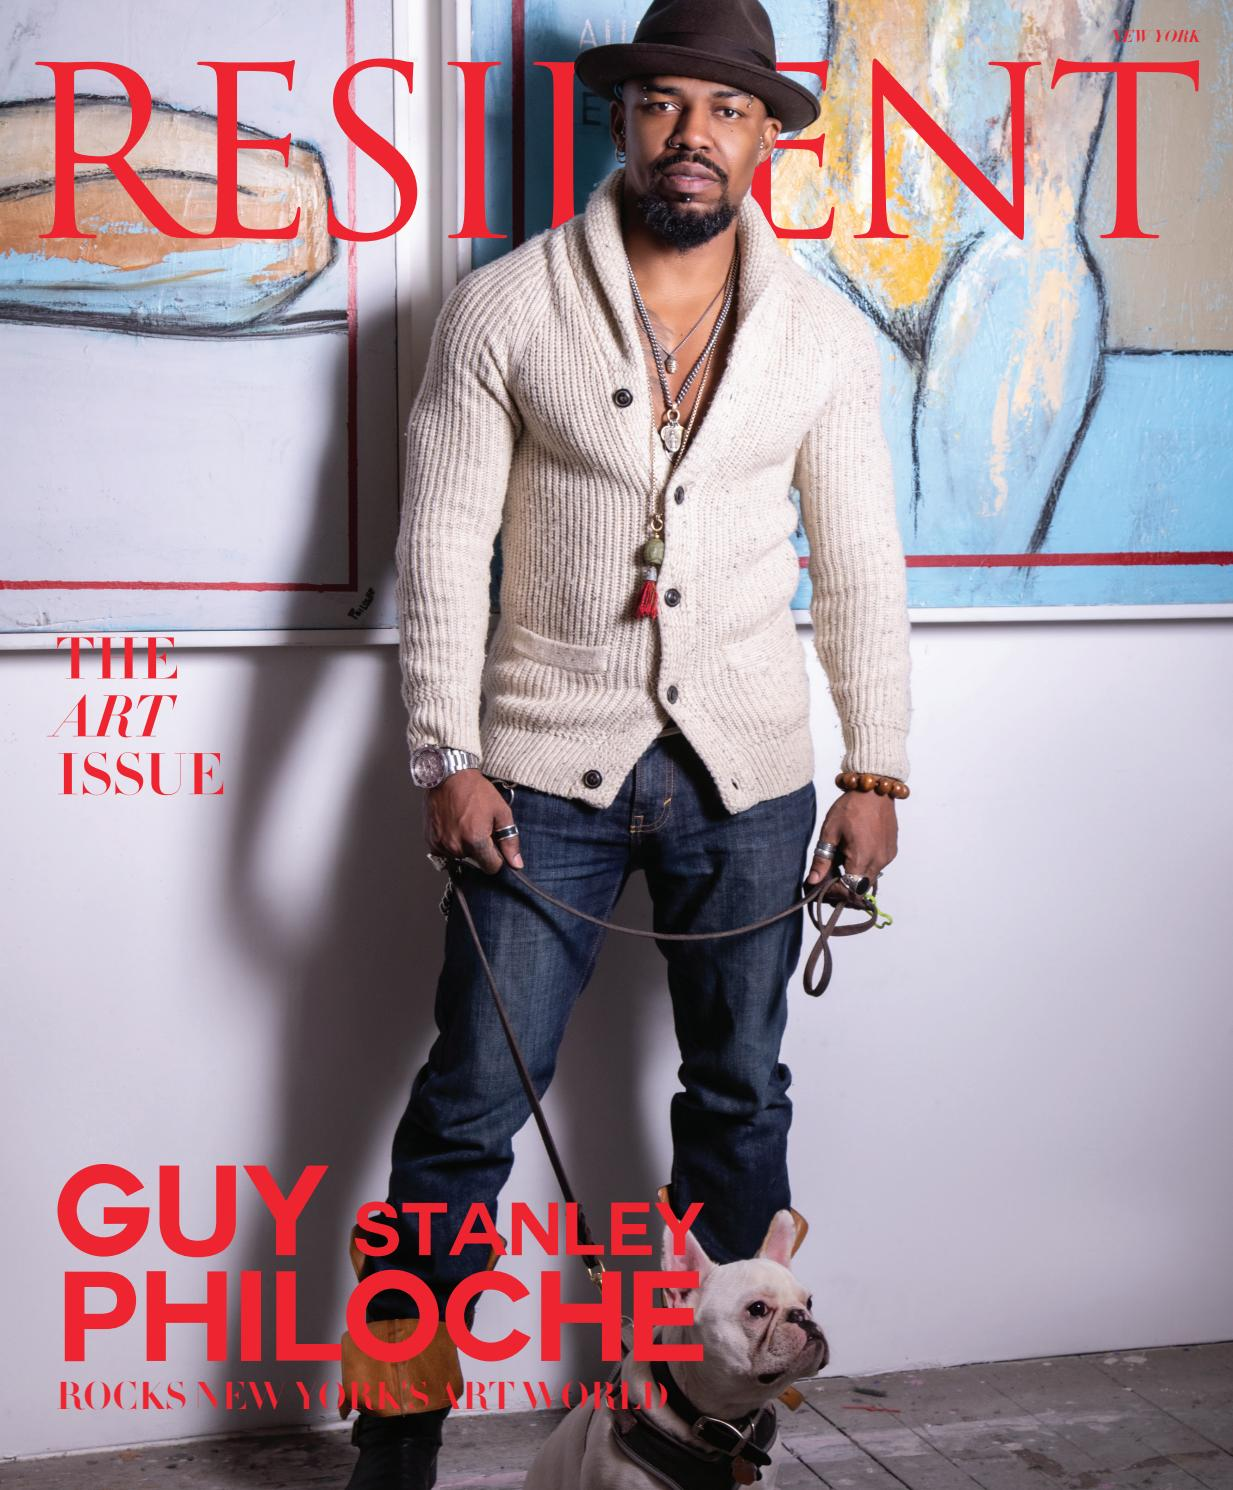 a0262ced29f0 Resident Magazine NY JANUARY 2019 GUY STANLEY PHILOCHE by Resident ...